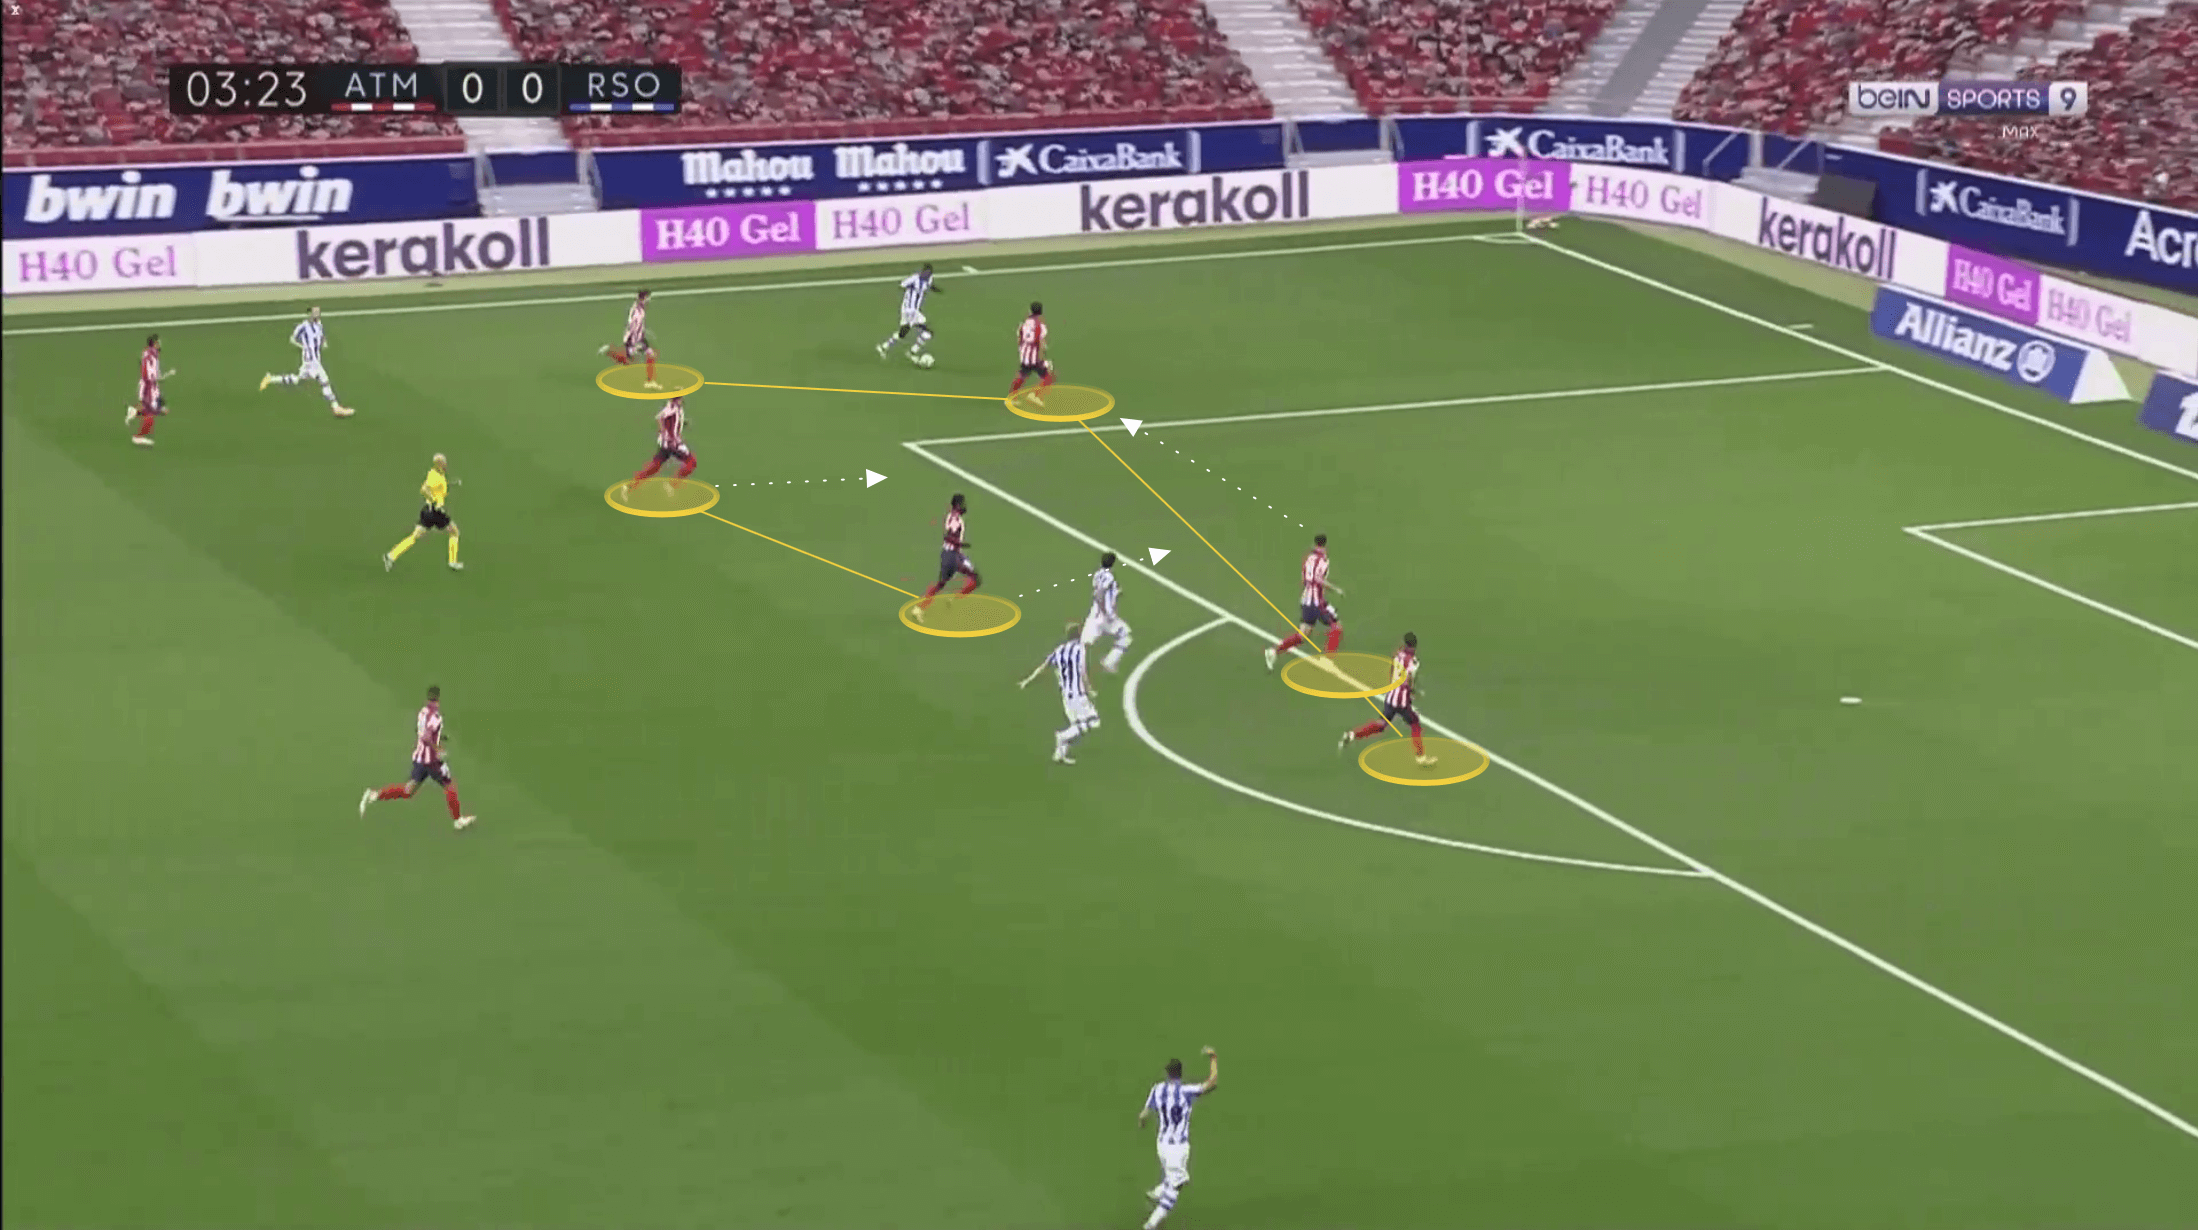 Head Coach Analysis: Breaking down Diego Simeone's defensive tactics at Atletico - tactical analysis tactics